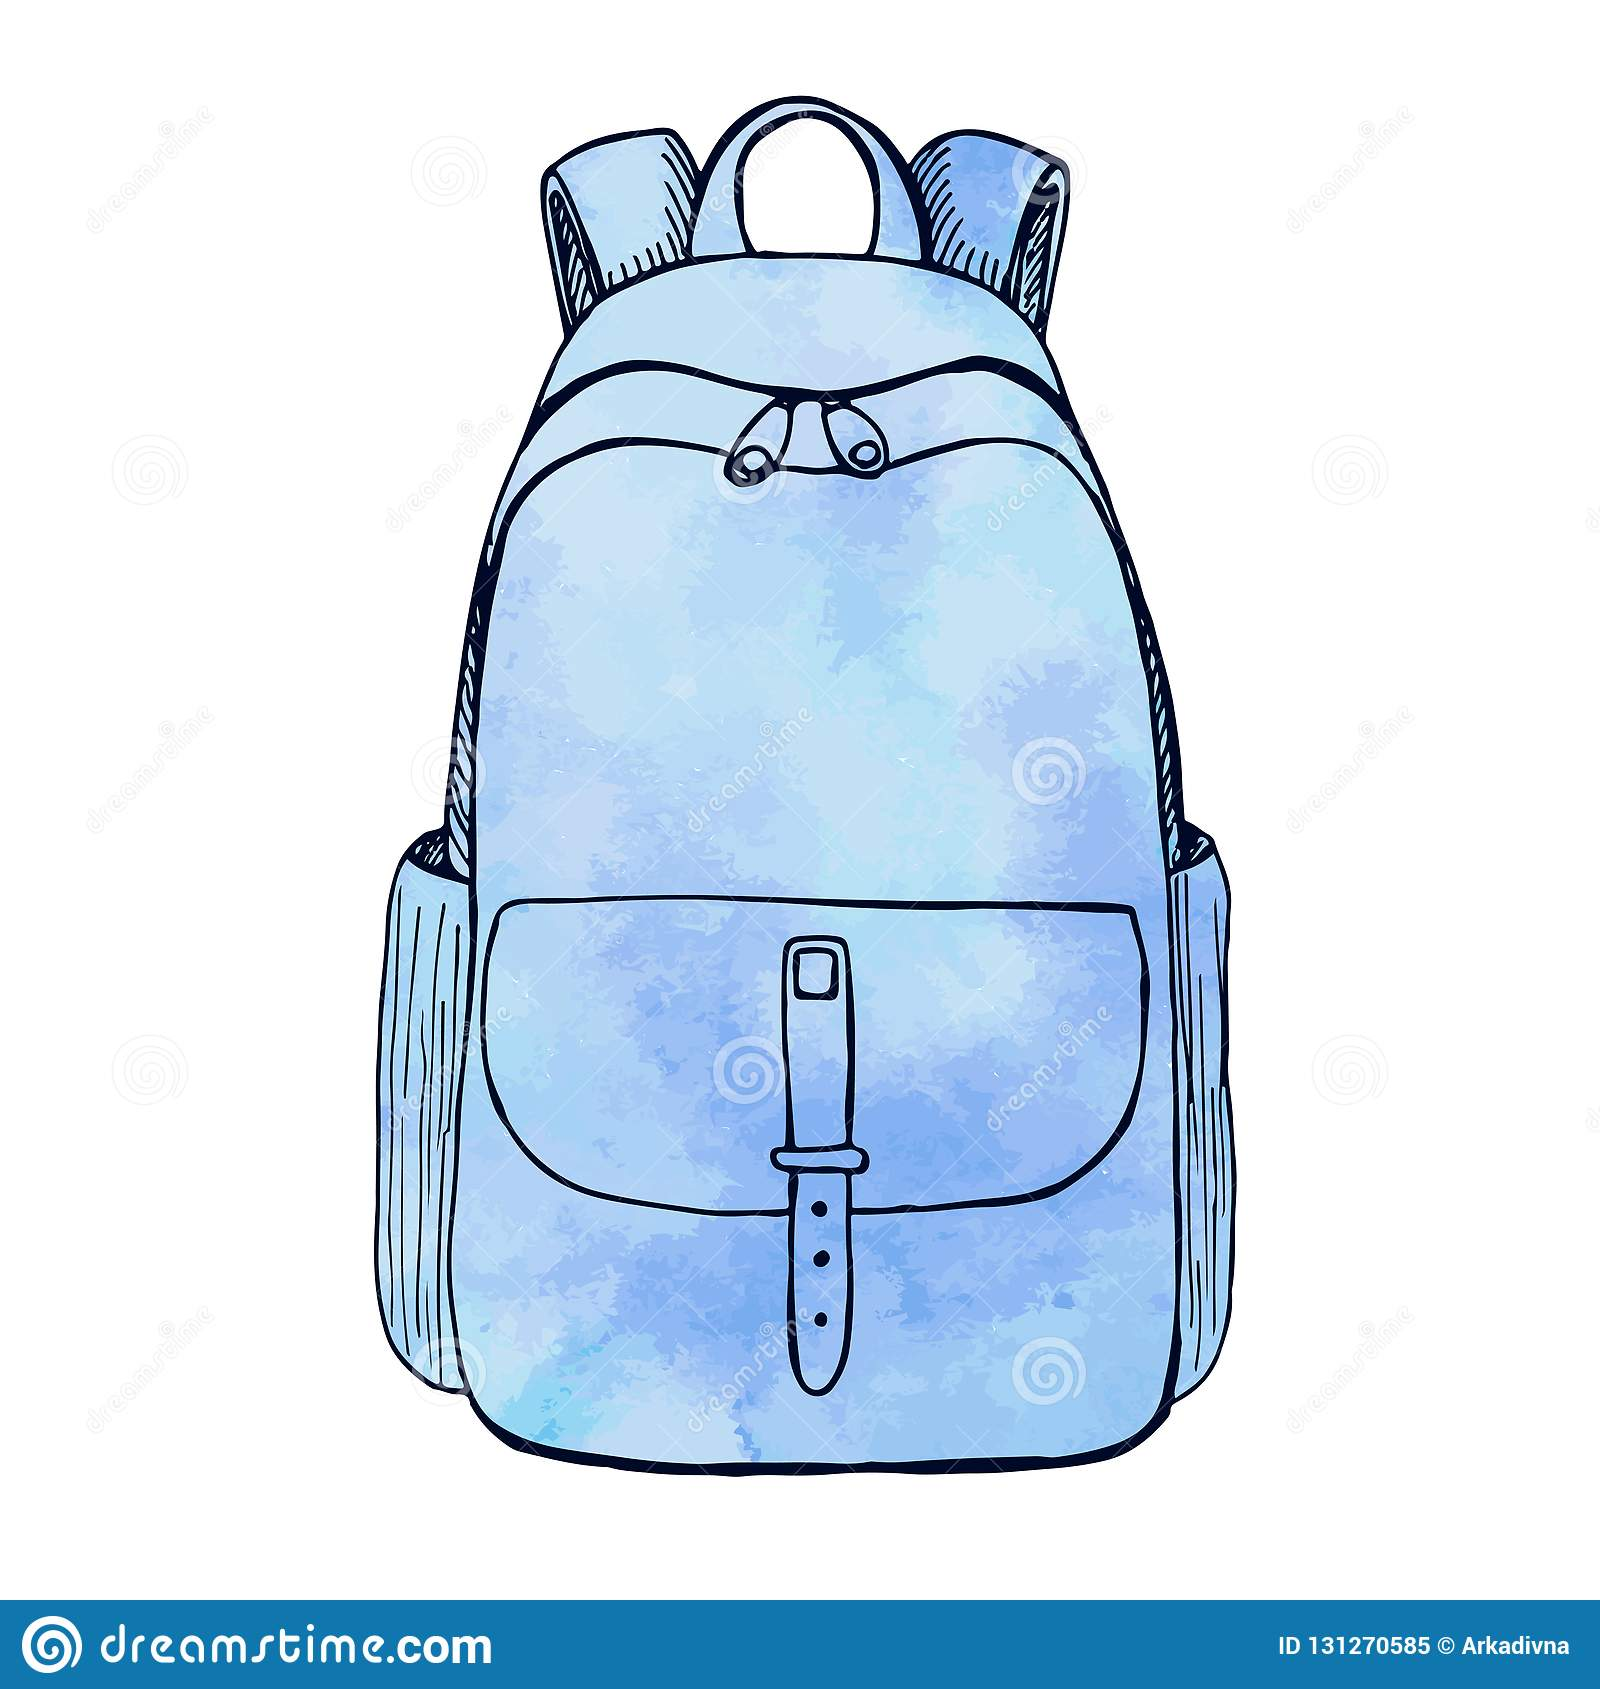 ef7bff7c89b Sketch of a rucksack. Backpack isolated on white background. Vector  illustration of a sketch style.Stylized watercolor.